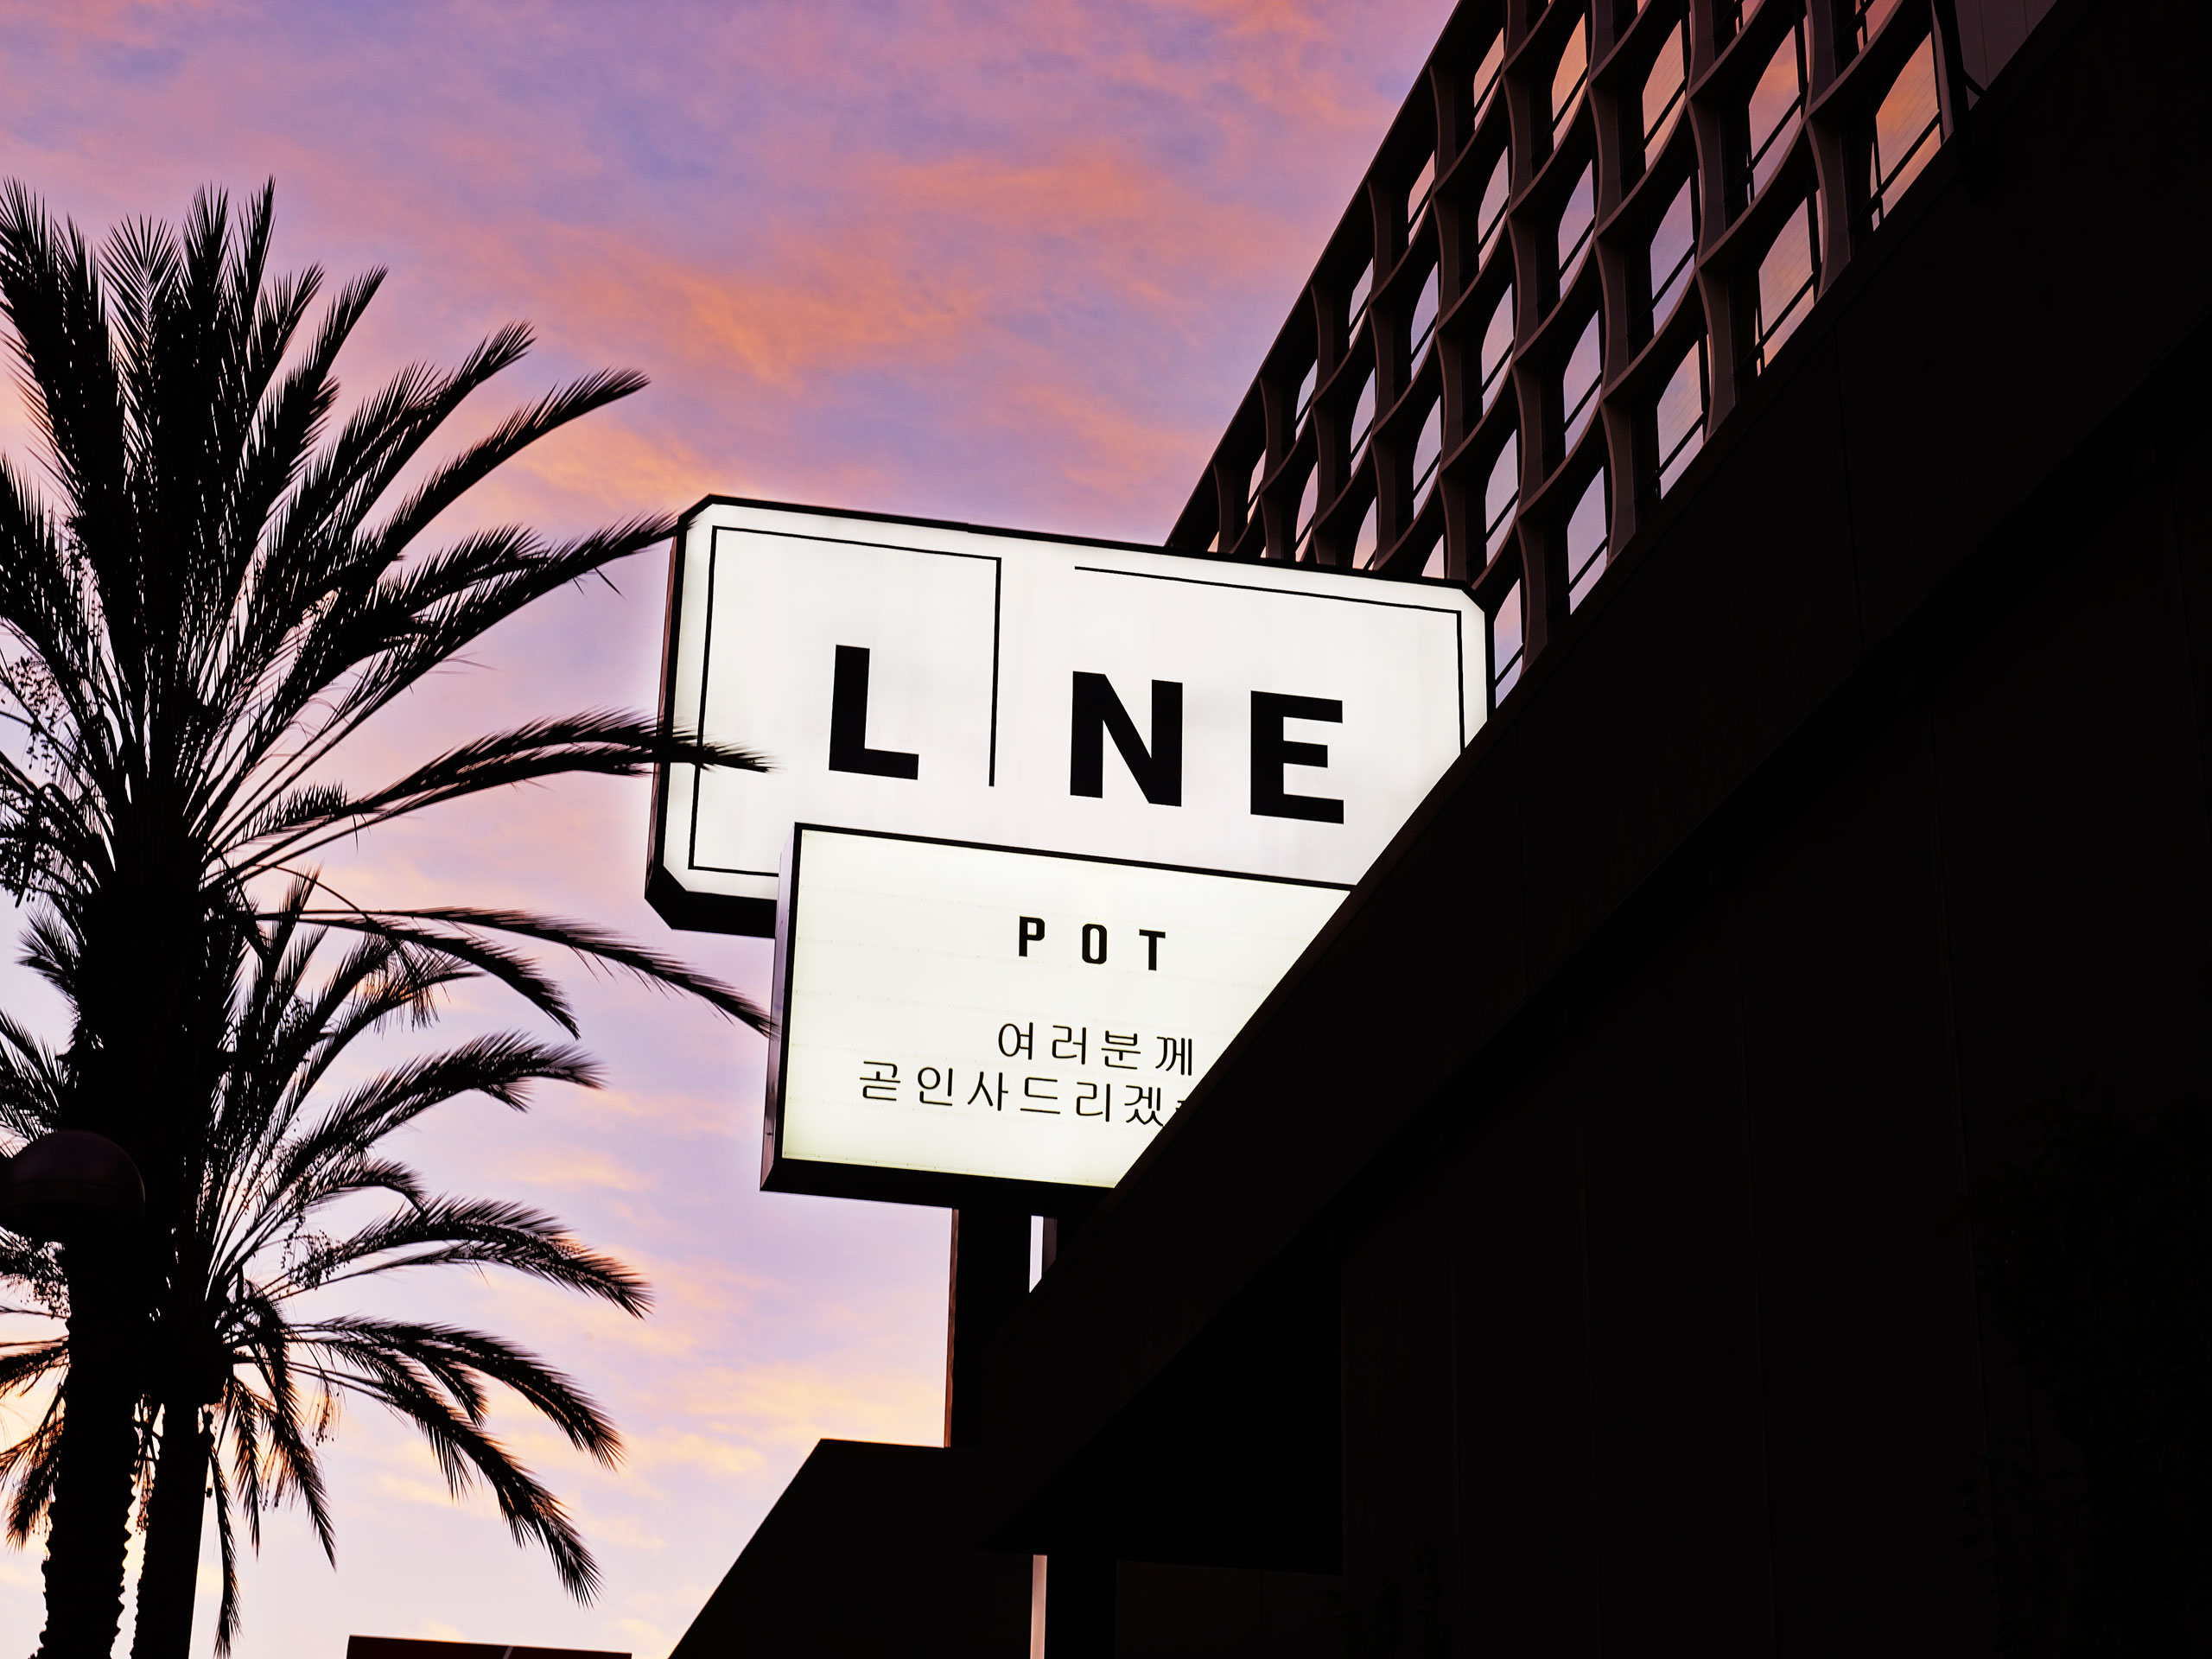 photo by Adrian Gaut, © The Line Hotel, L.A.